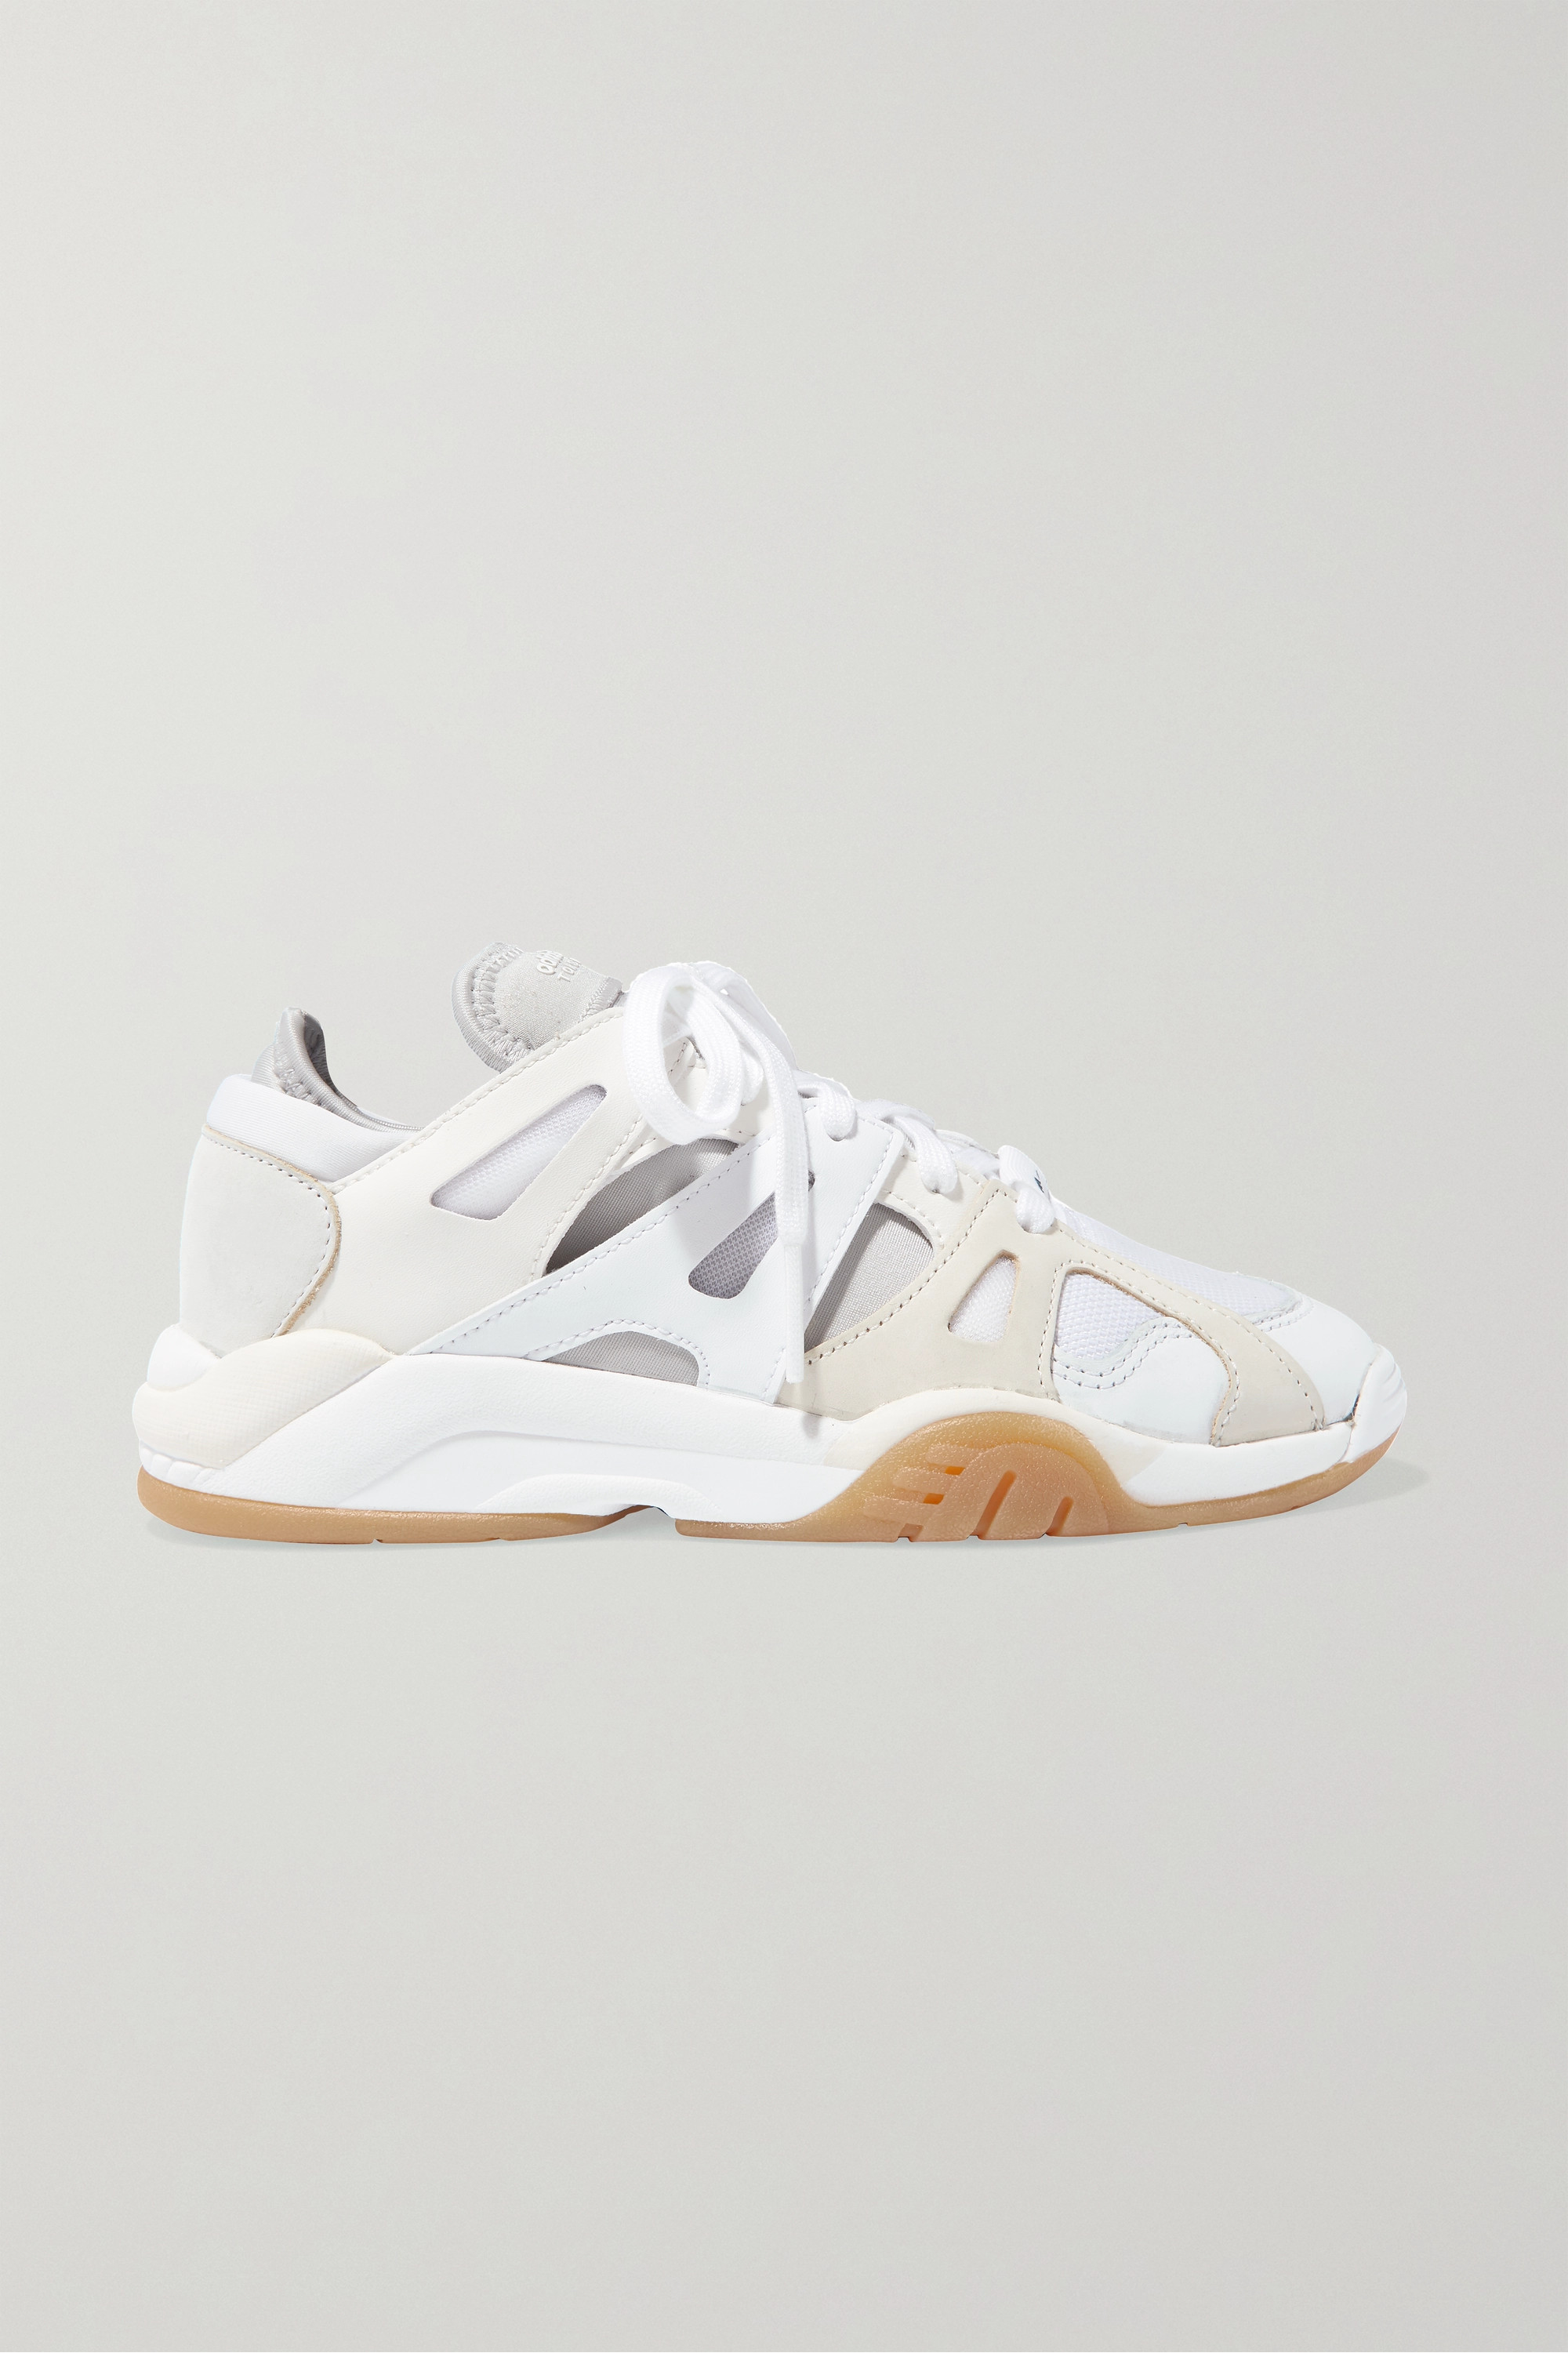 adidas Originals Dimension Low leather, neoprene and mesh sneakers